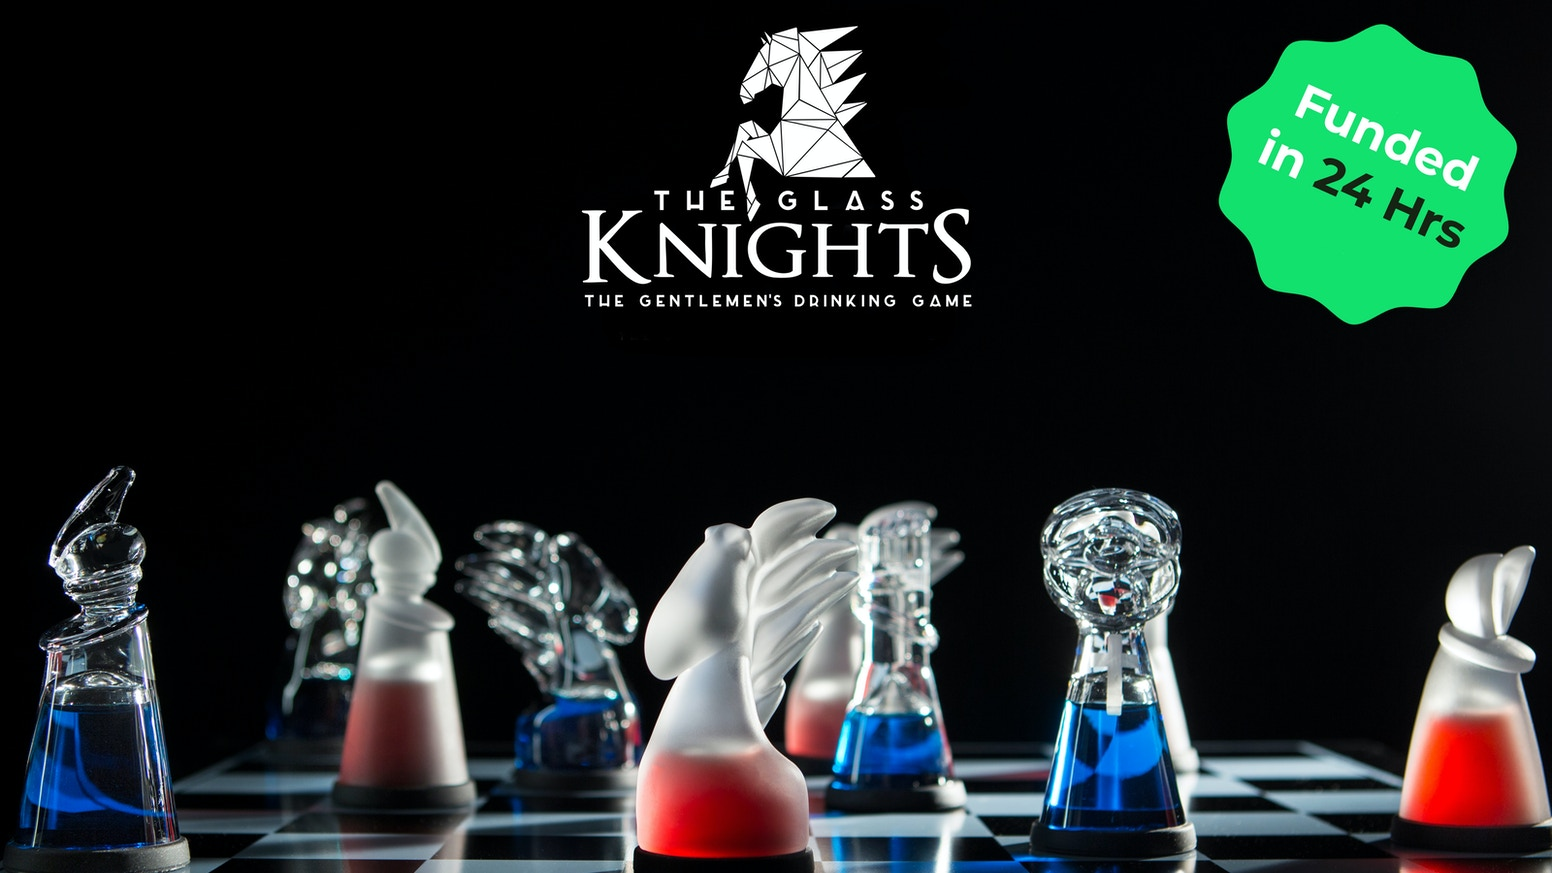 The iconic chess game reimagined into a set of uniquely crafted glass pieces that double as shot glasses for your next party.